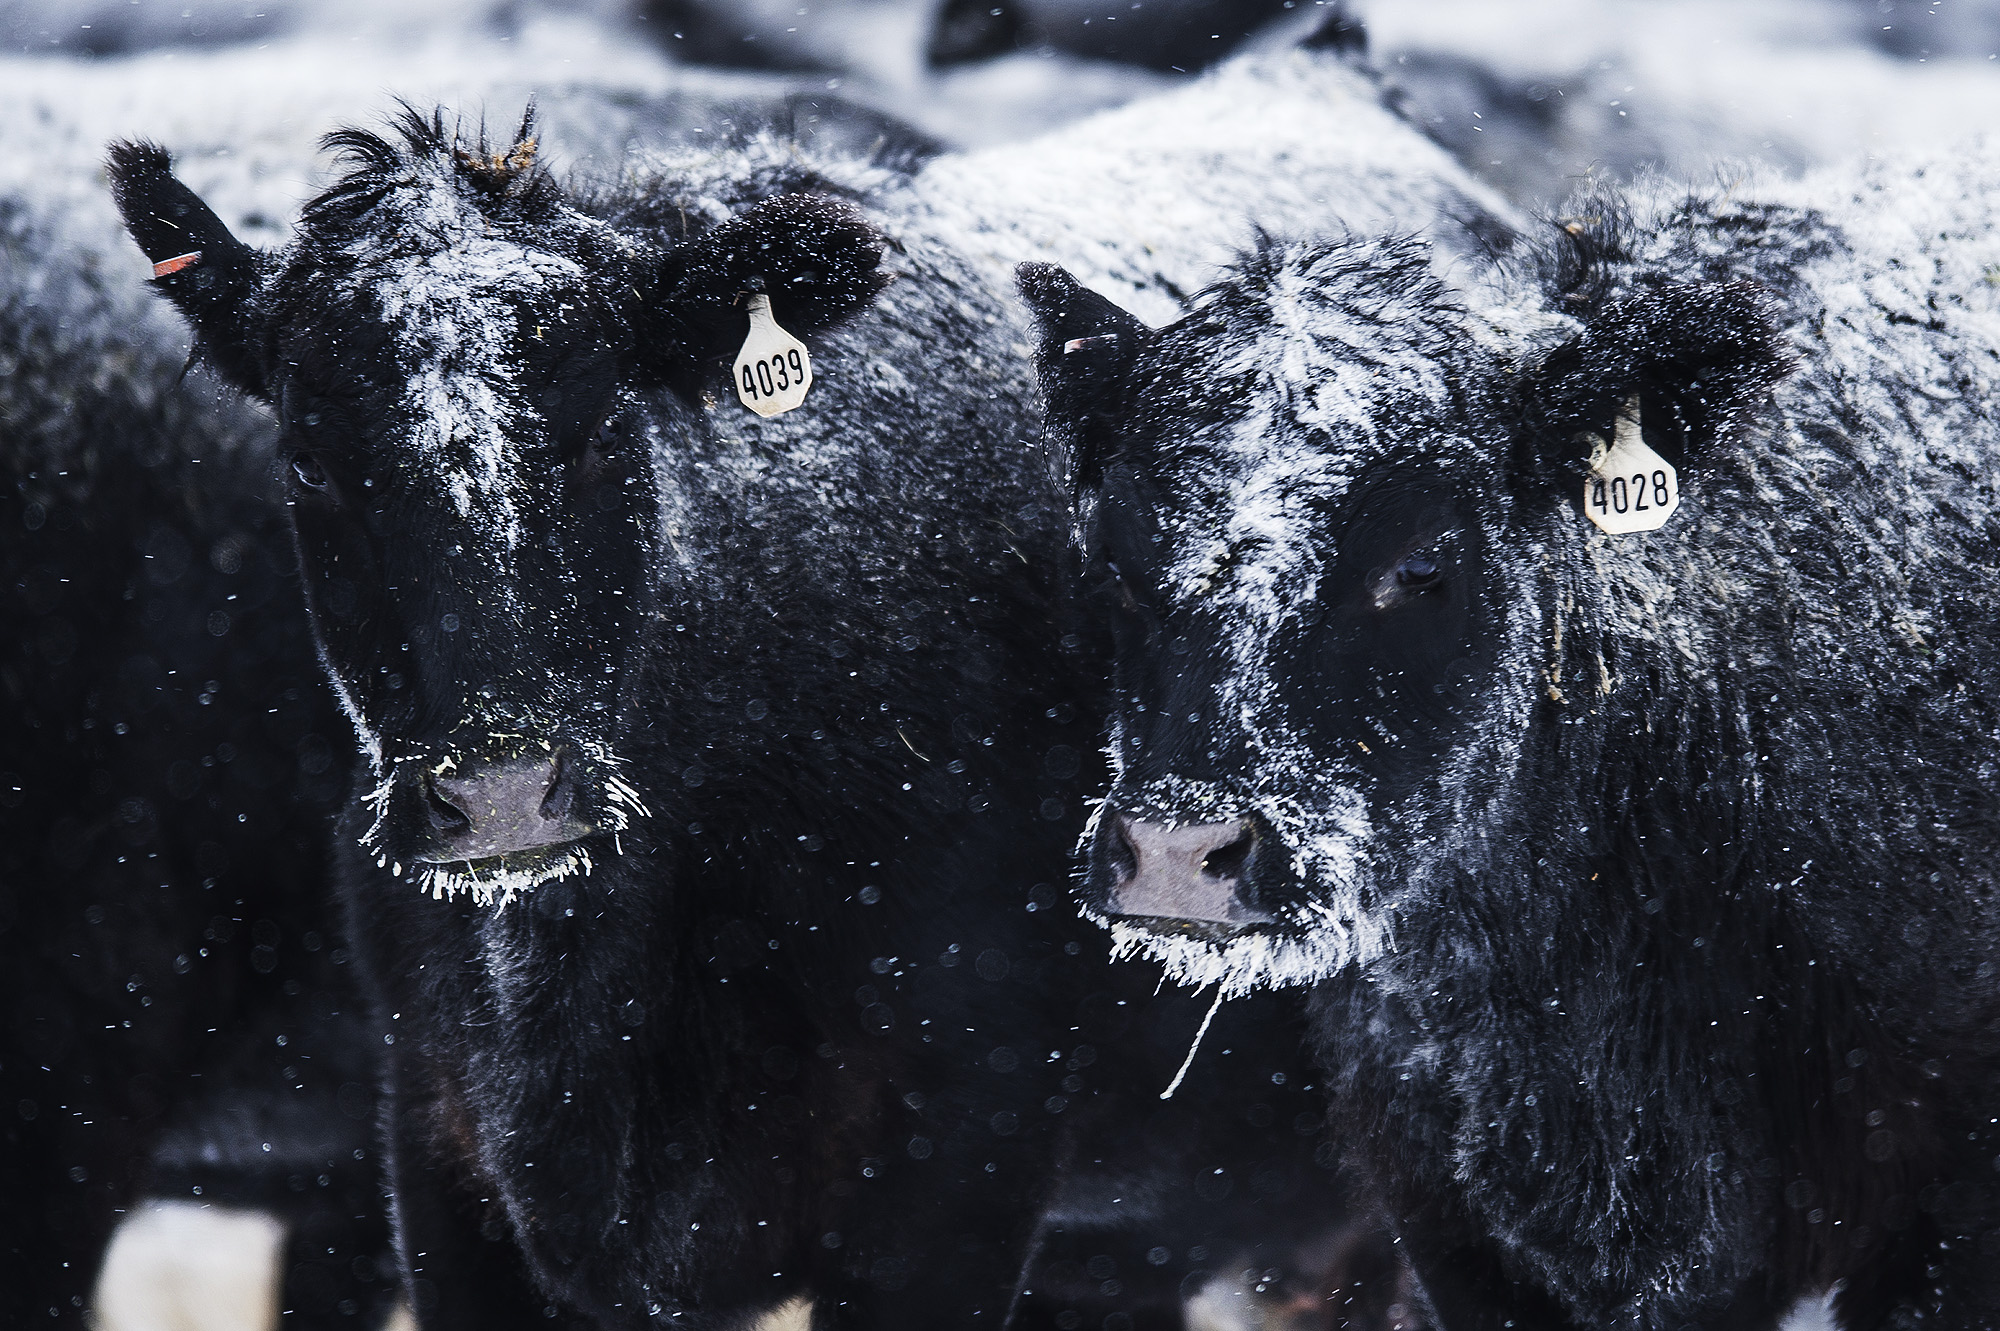 Once the cattle are at the NARC, the spend the next few months, through calving season, at the 3,000-acre facility that is part of Montana State University's College of Agriculture. Data from research is used to improve cattle throughout Montana.